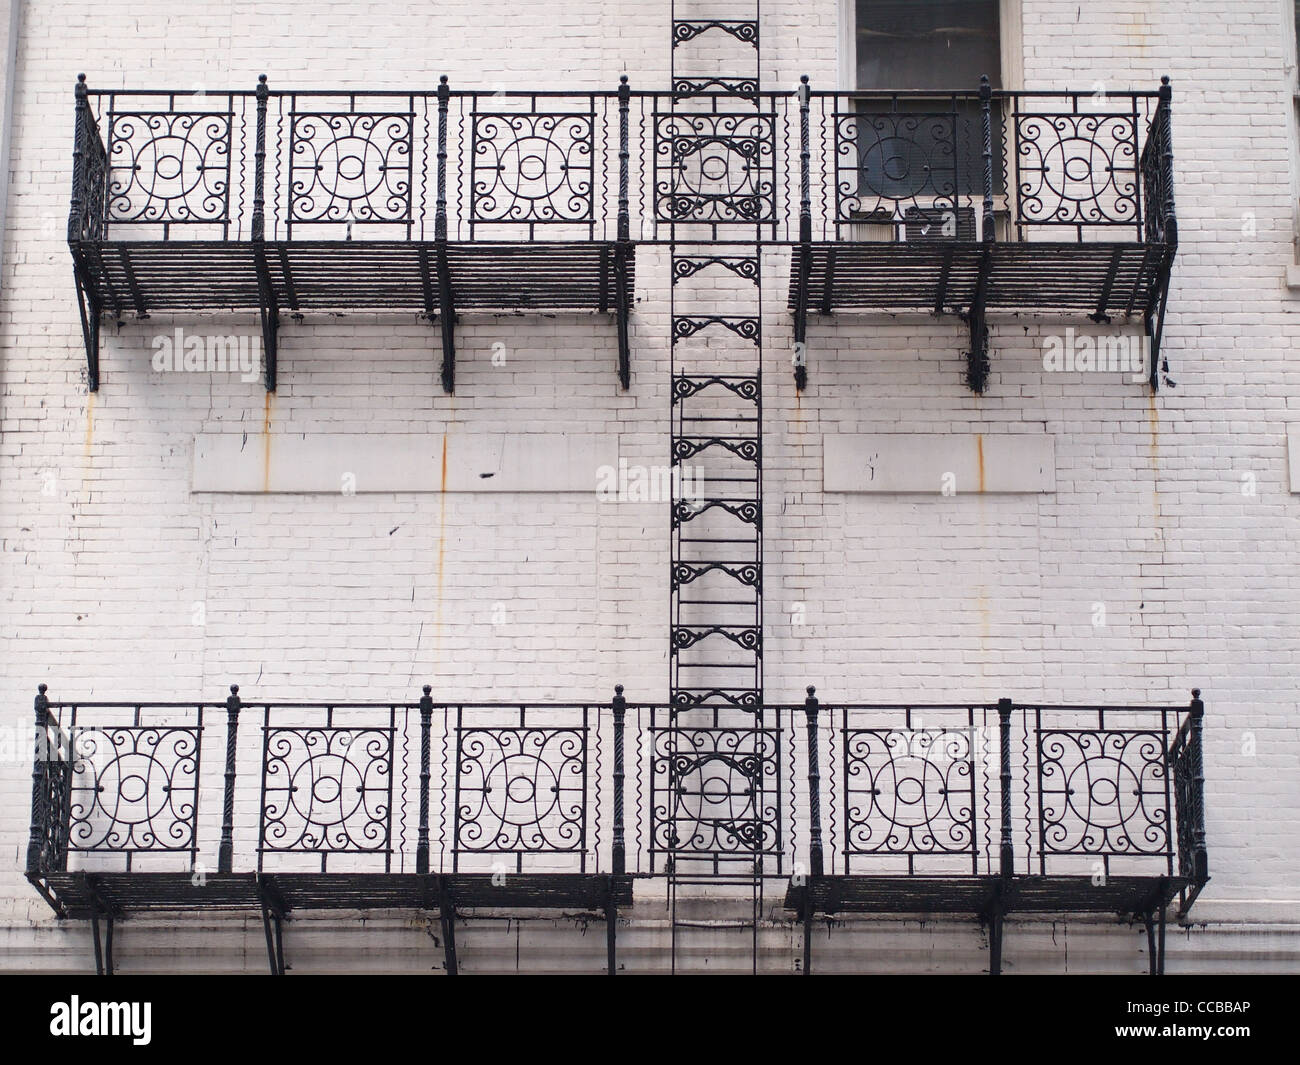 wrought iron spindle with interesting wrought iron.htm wrought iron fire escape stock photos   wrought iron fire escape  wrought iron fire escape stock photos